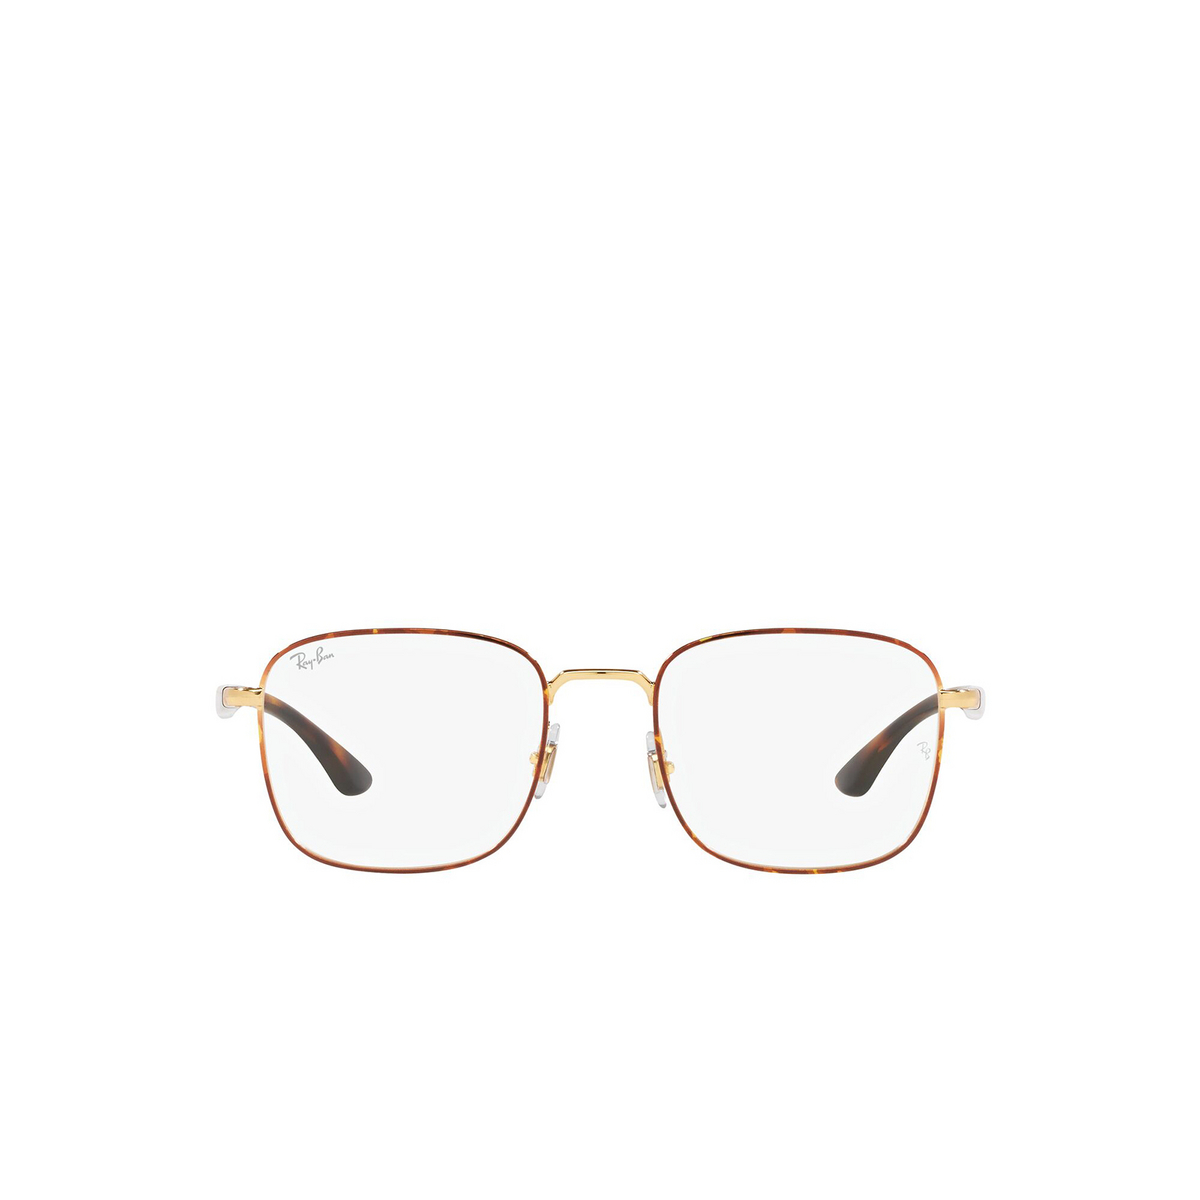 Ray-Ban® Square Eyeglasses: RX6469 color Havana On Arista 2945 - front view.